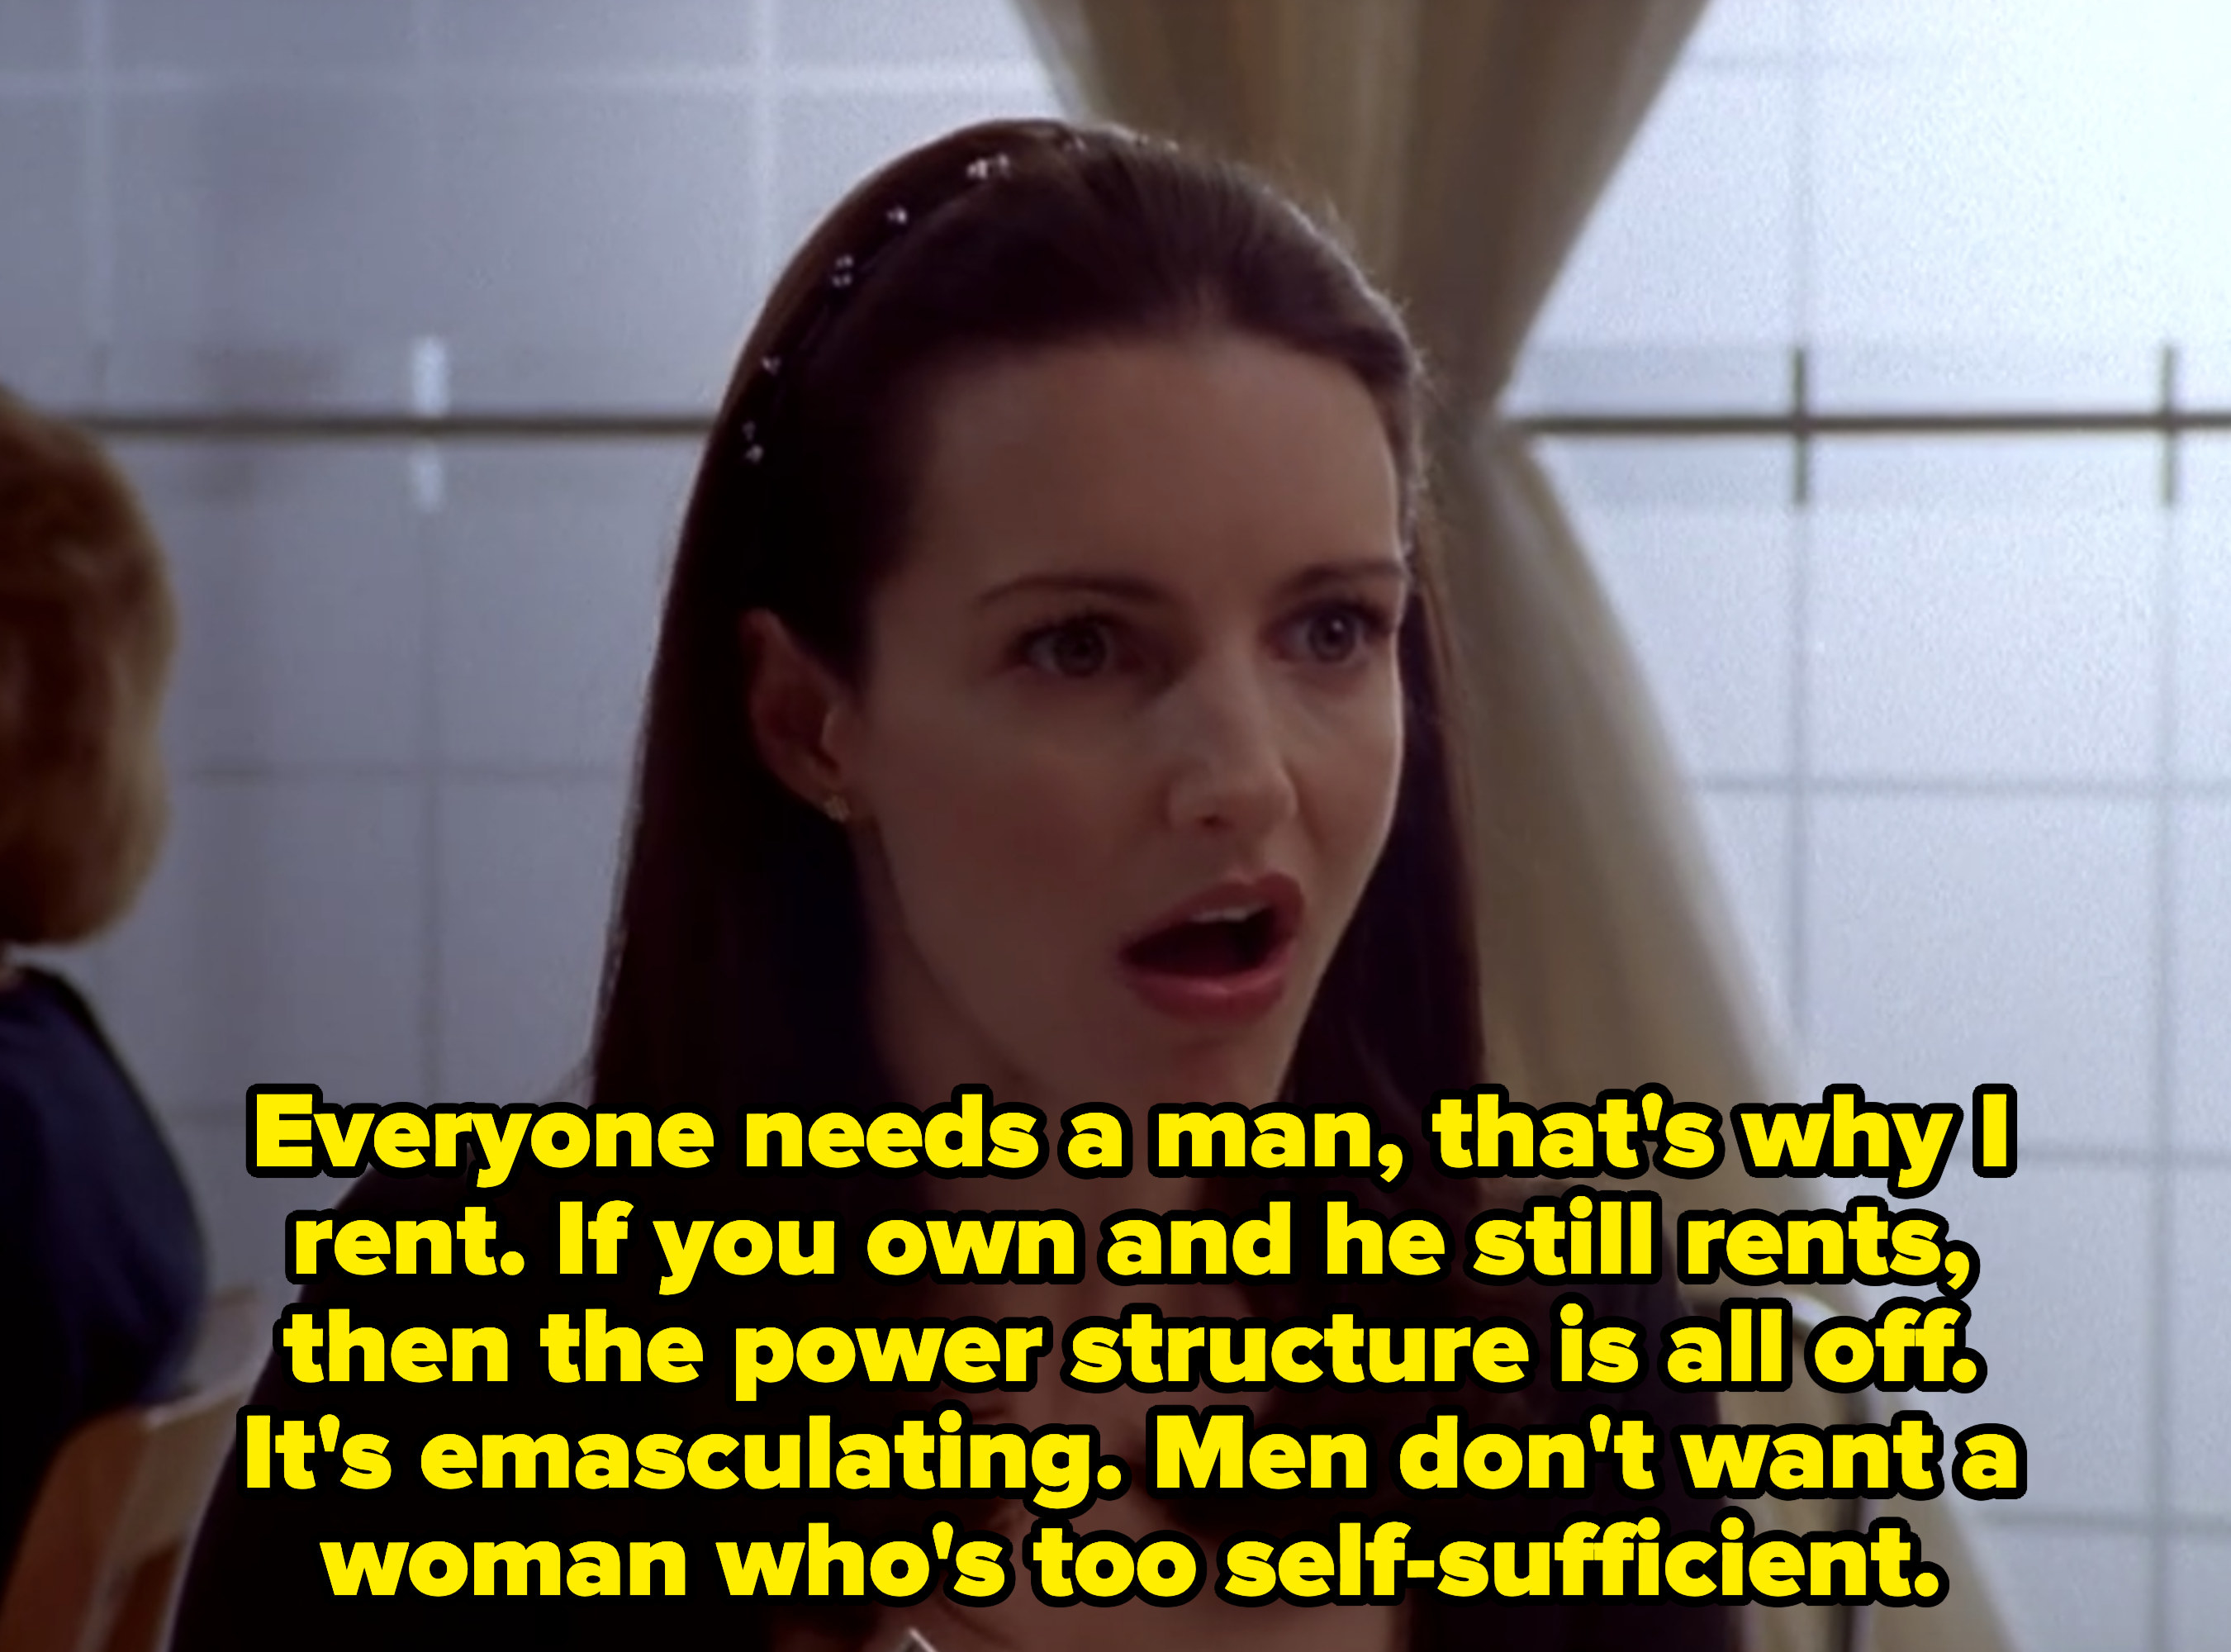 """Charlotte to Miranda: """"If you own and he rents, then the power structure is all off. It's emasculating. Men don't want a woman who's too self-sufficient"""""""